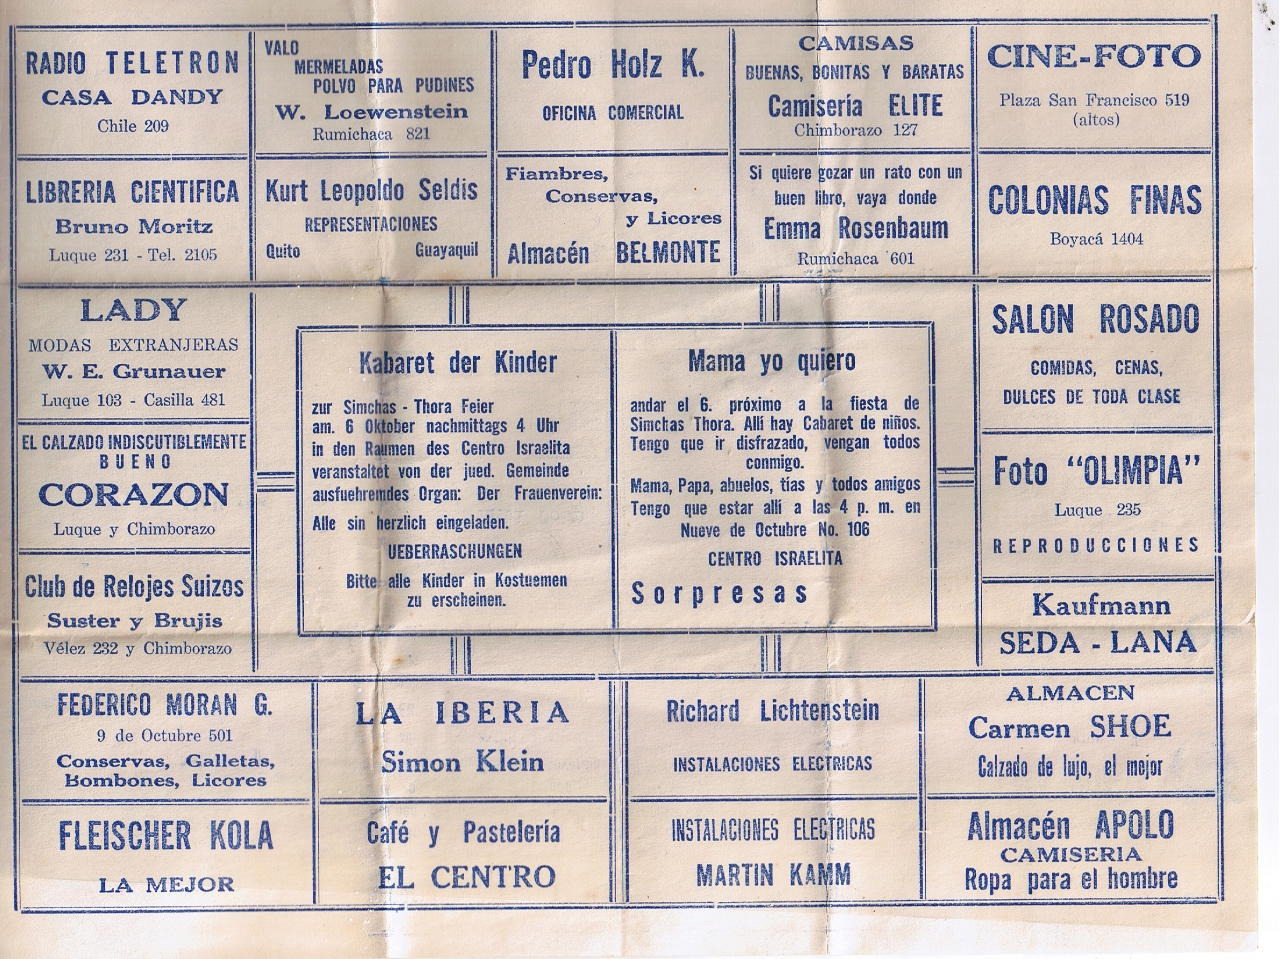 ADVERTISEMENTS from Jewish newspaper in Guayaquil (date unknown, but likely ca. 1950)